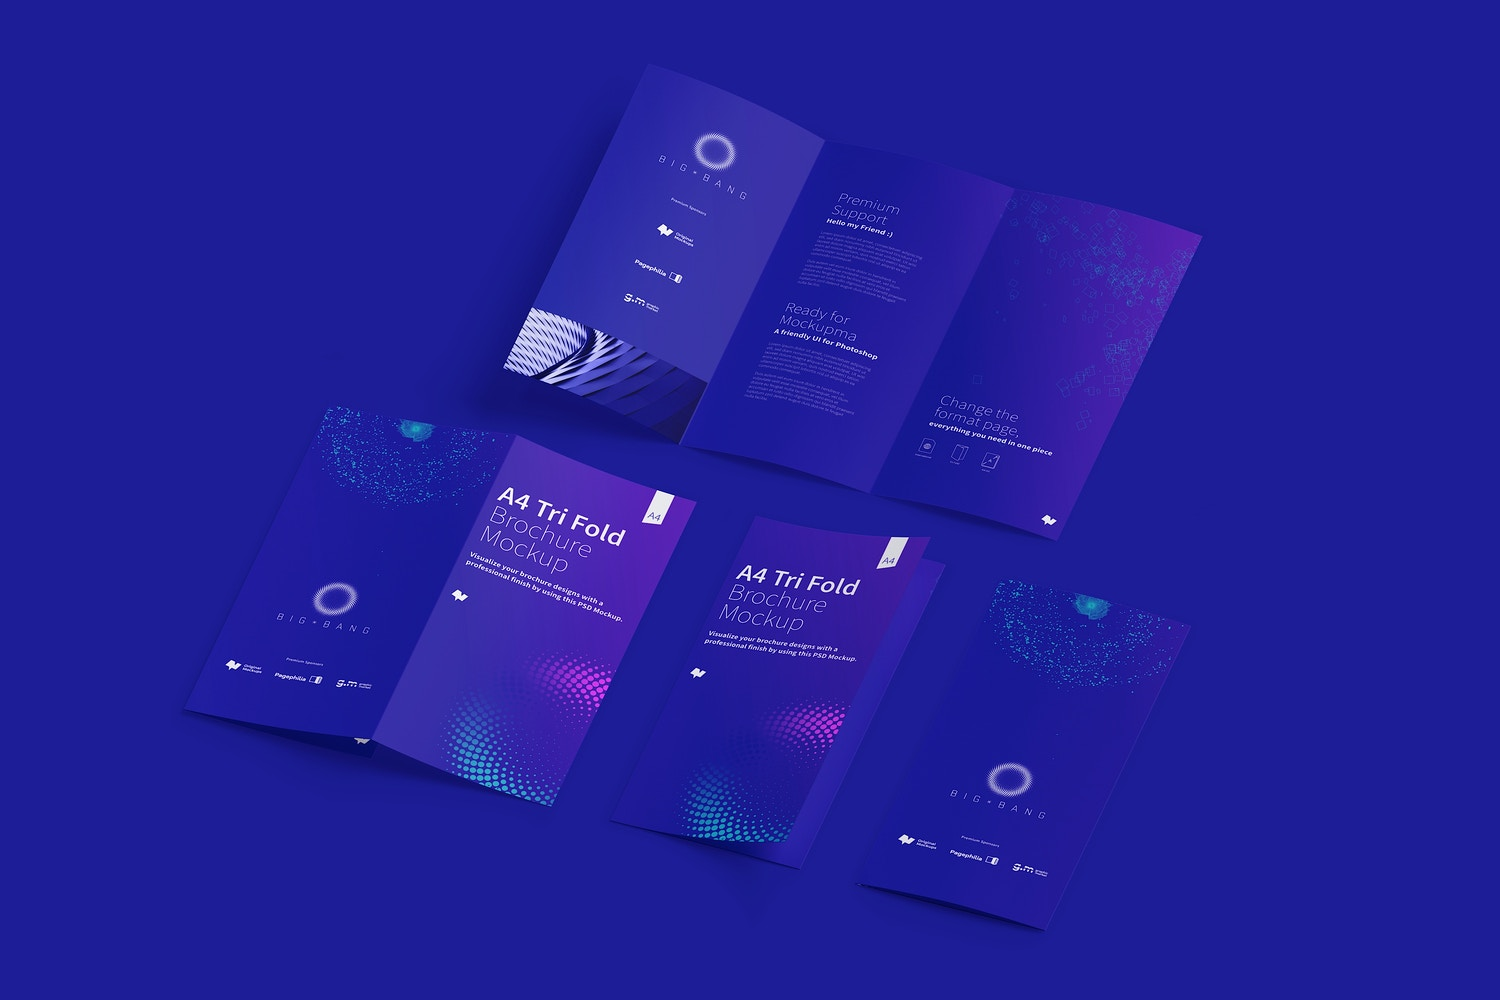 A4 Trifold Brochure Mockup 05 (5) by Original Mockups on Original Mockups